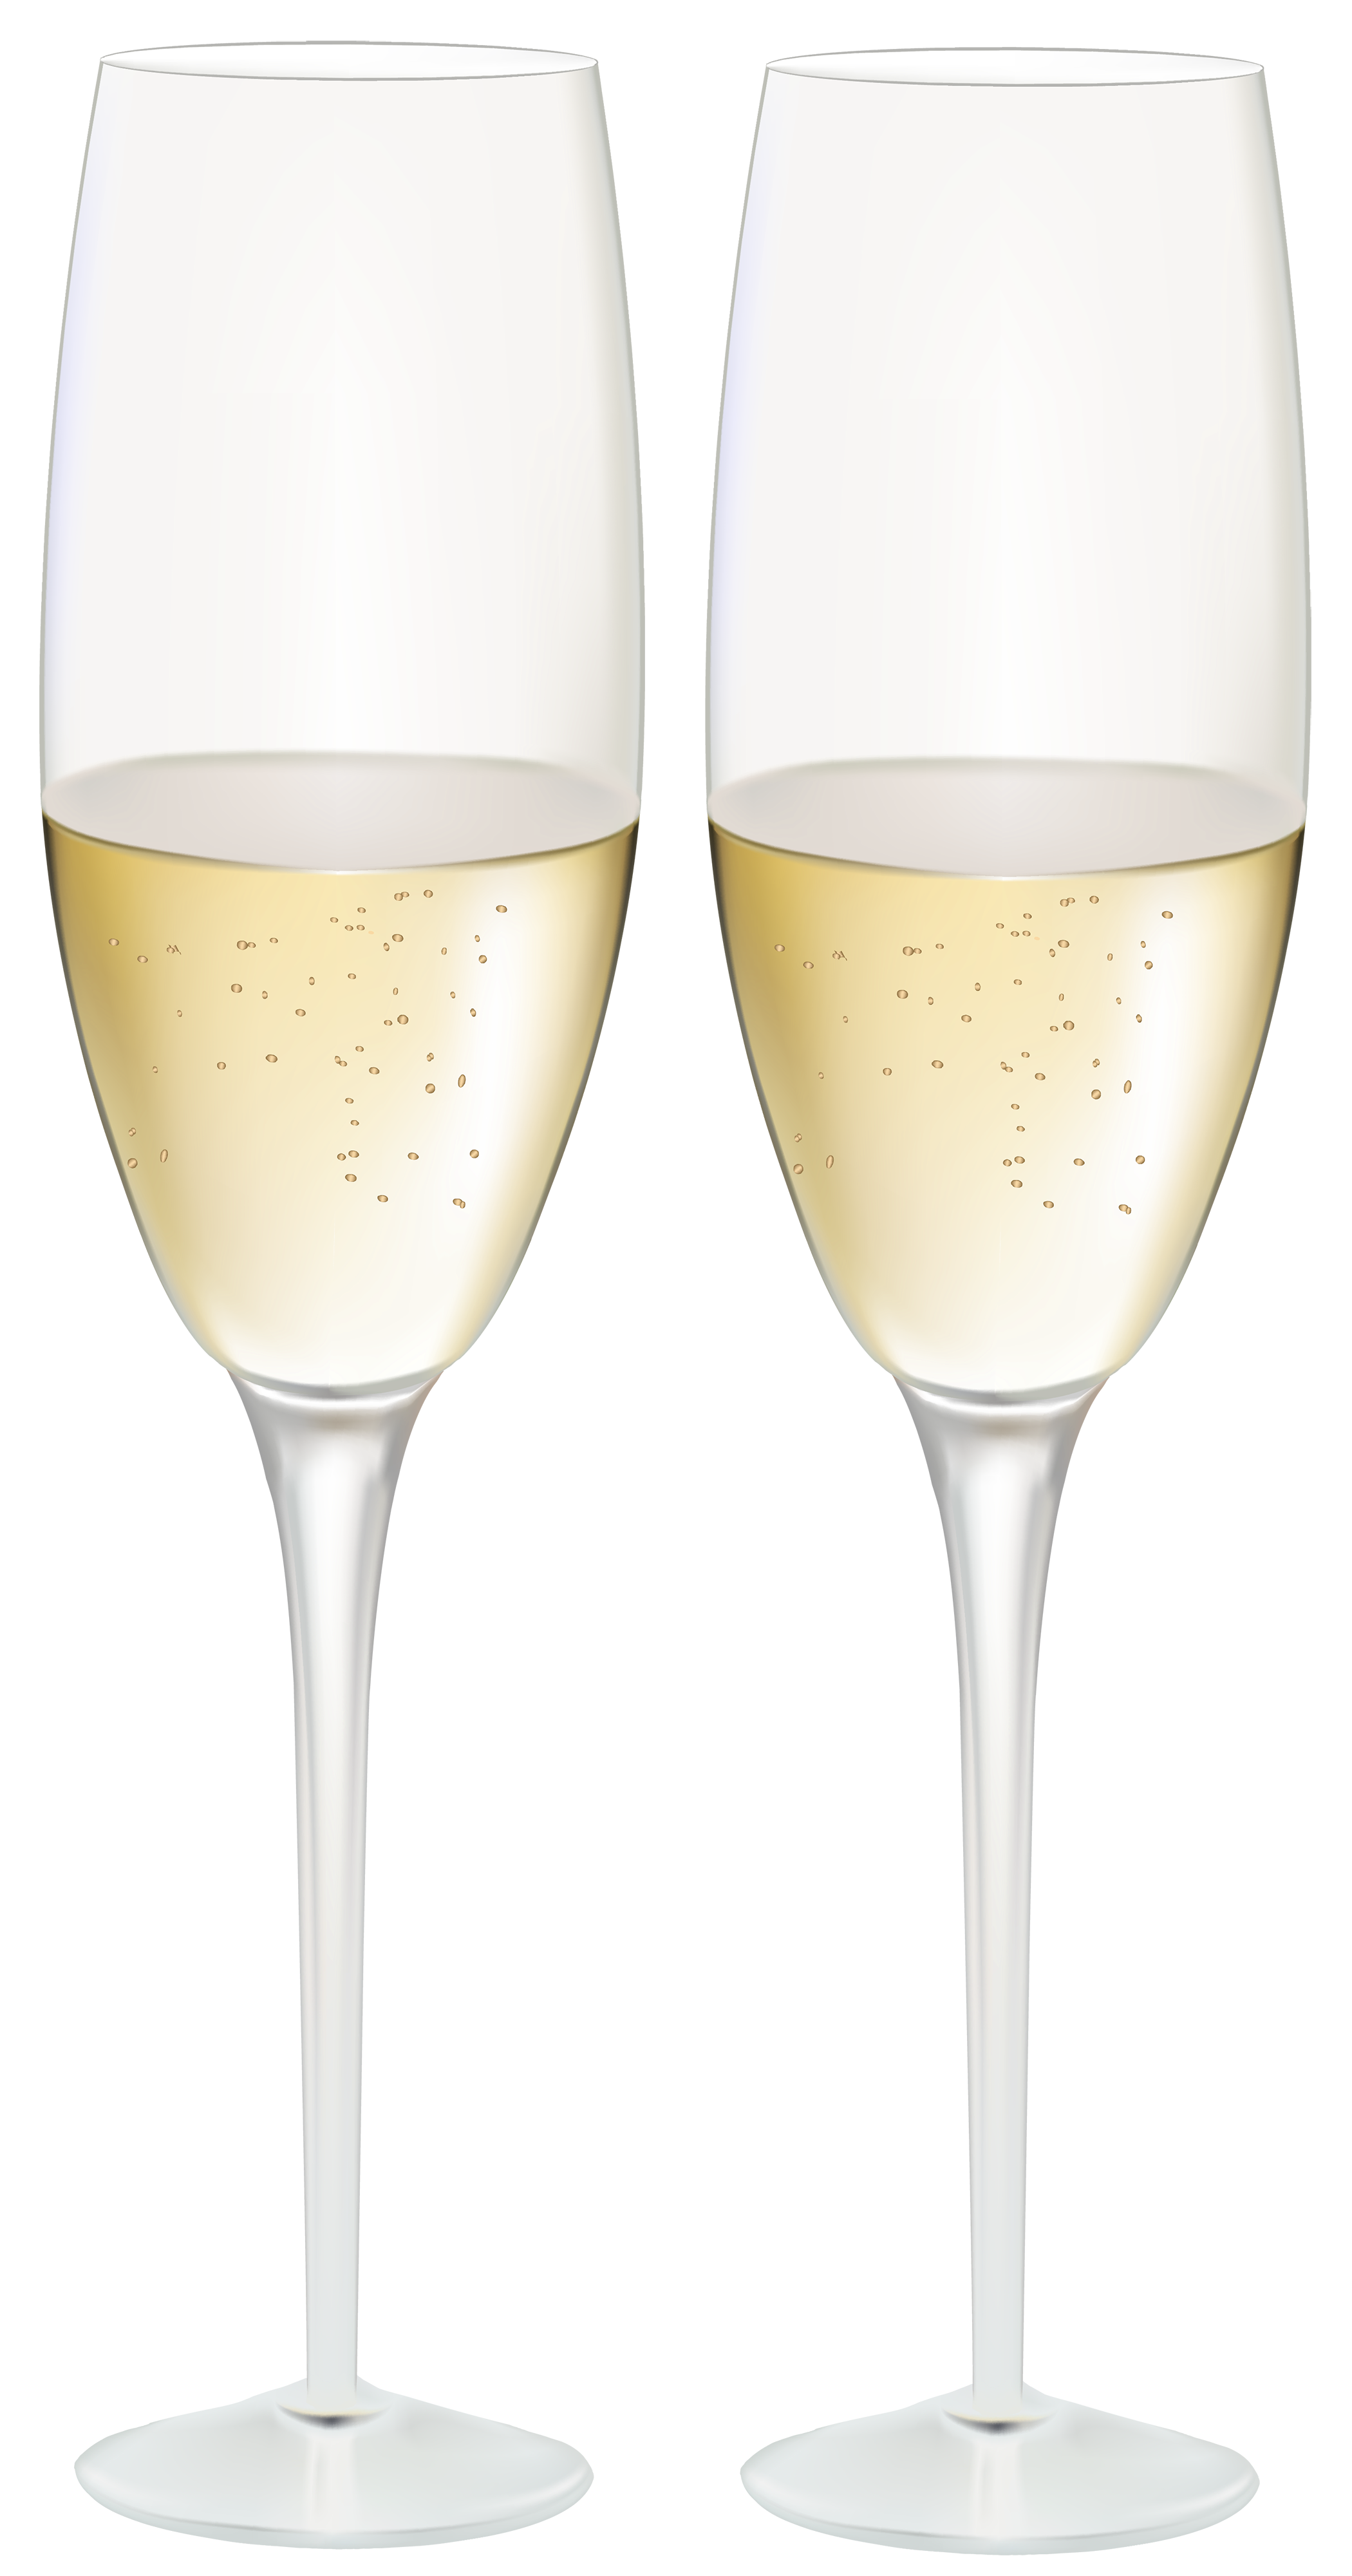 Money in glass cup clipart transparent library Champagne Glasses PNG Clipart - Best WEB Clipart transparent library